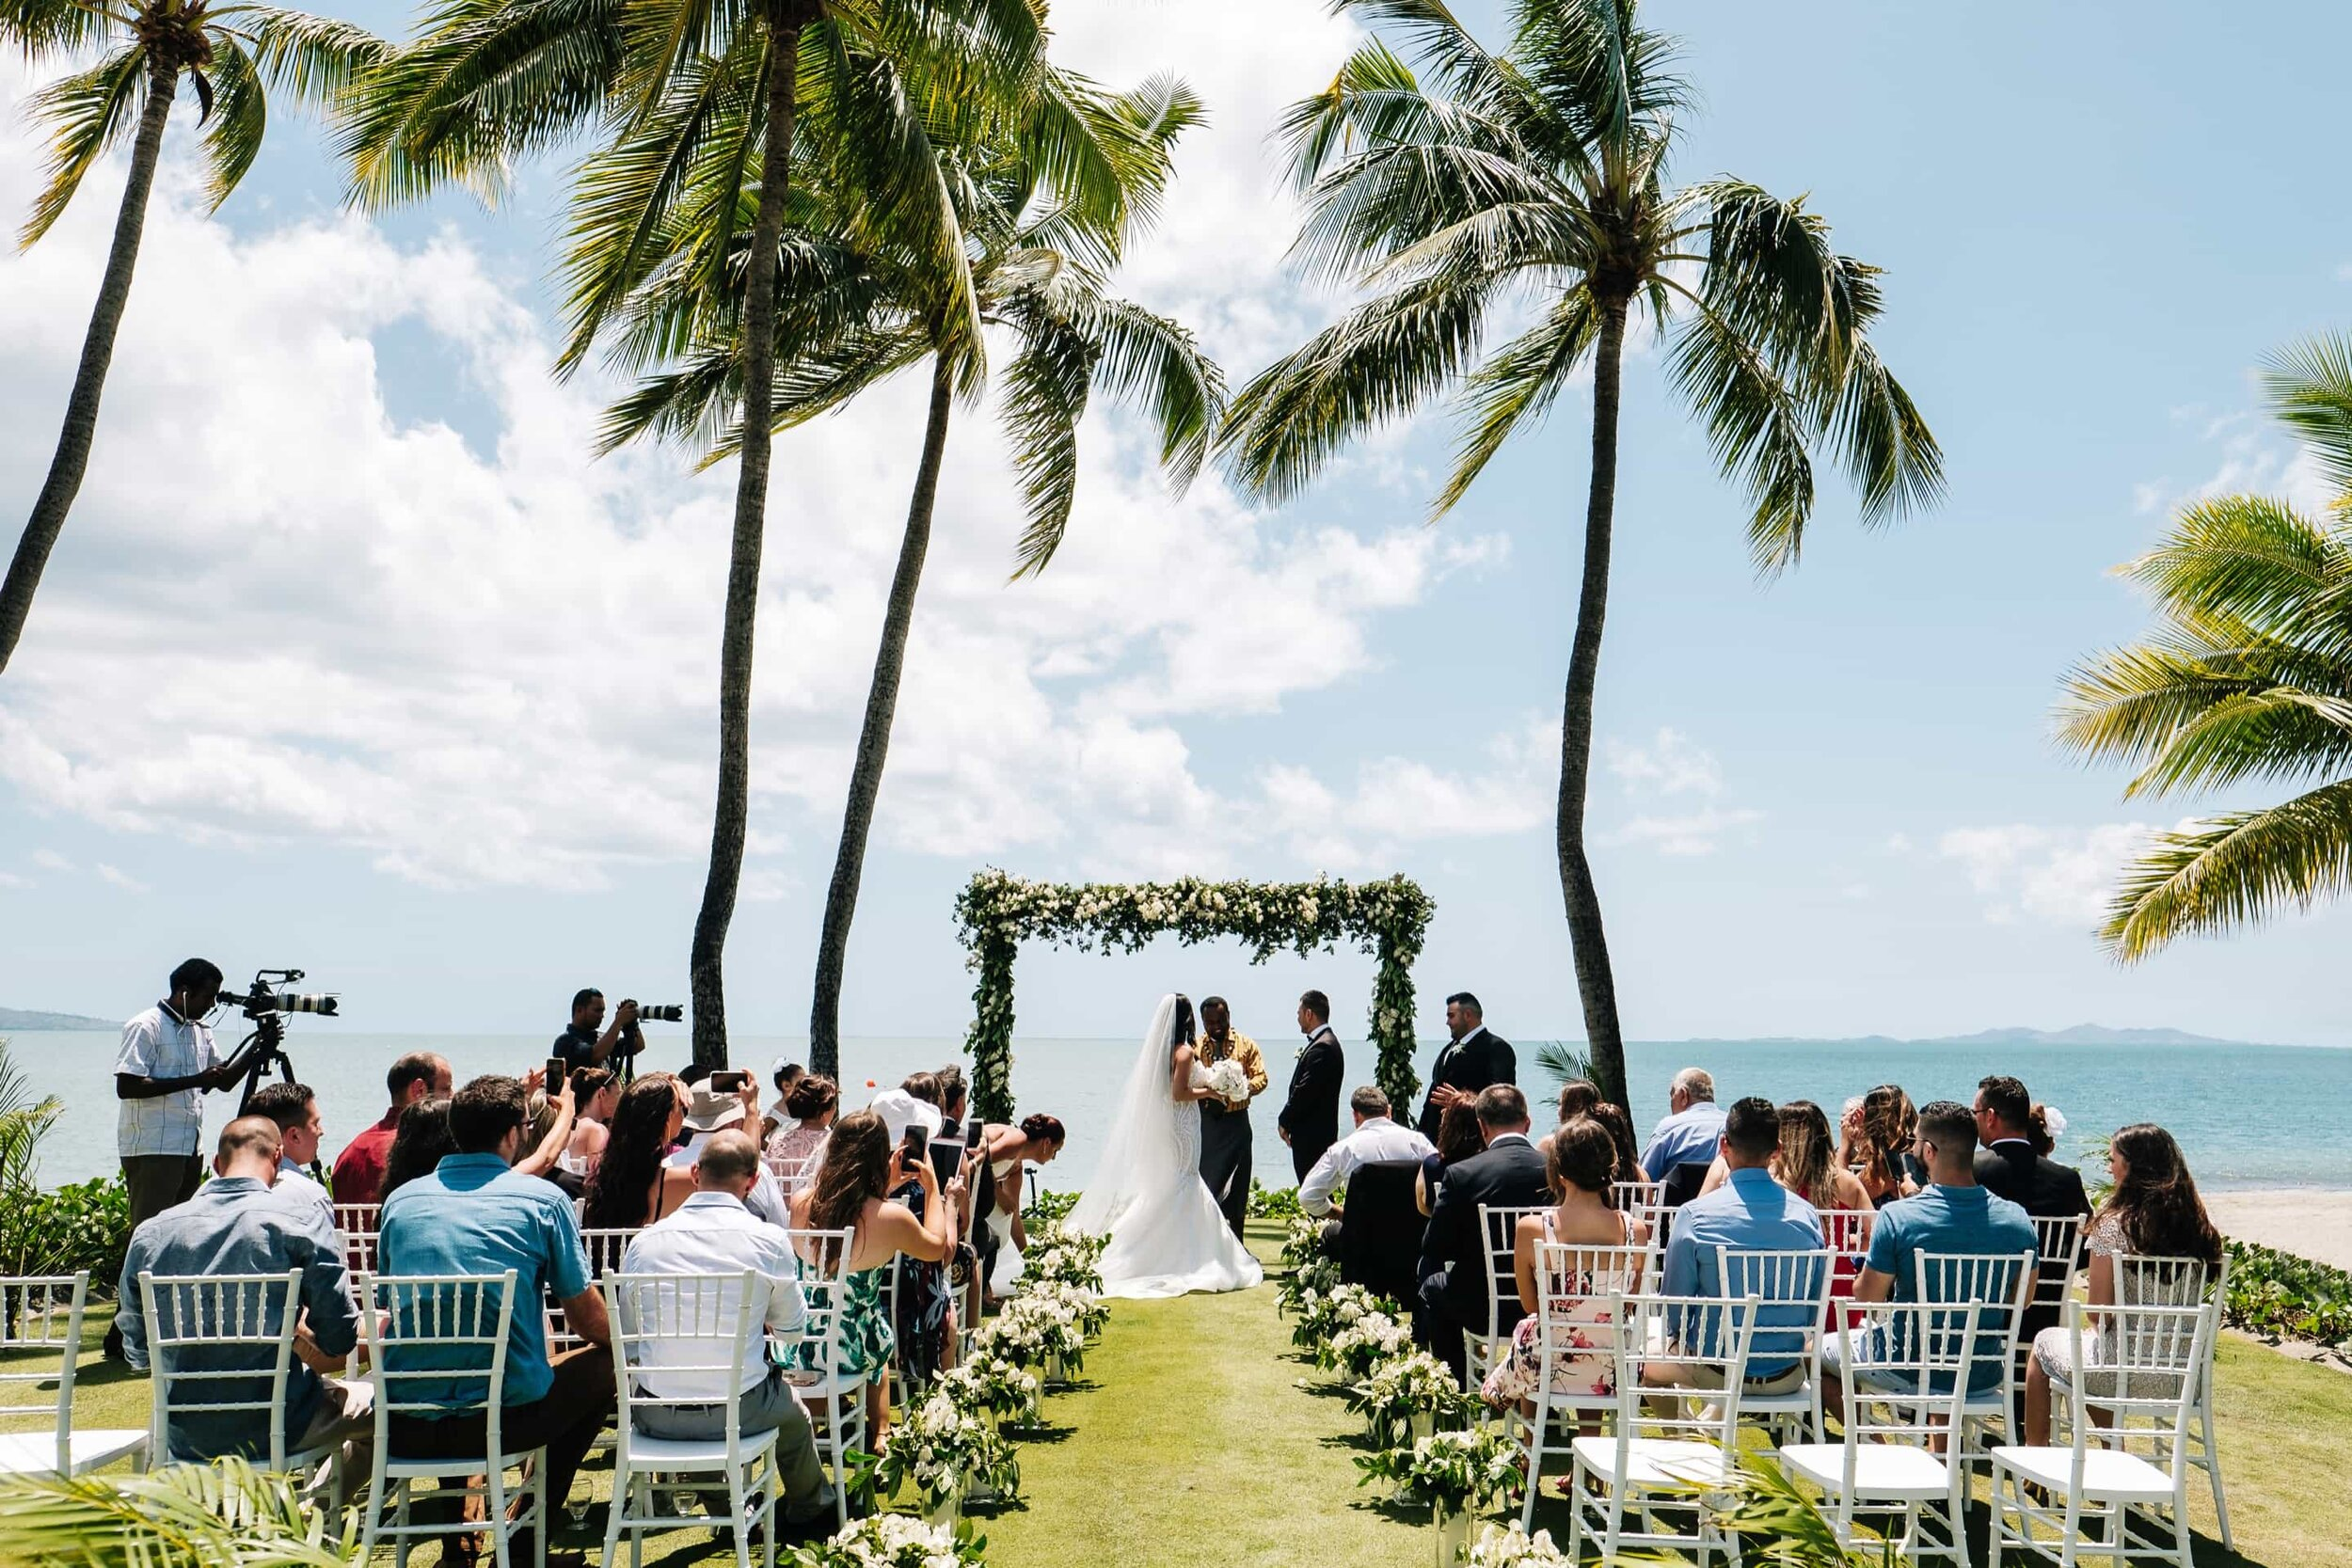 A ceremony at the Wedding Lawn by the beach at the Sheraton Fiji